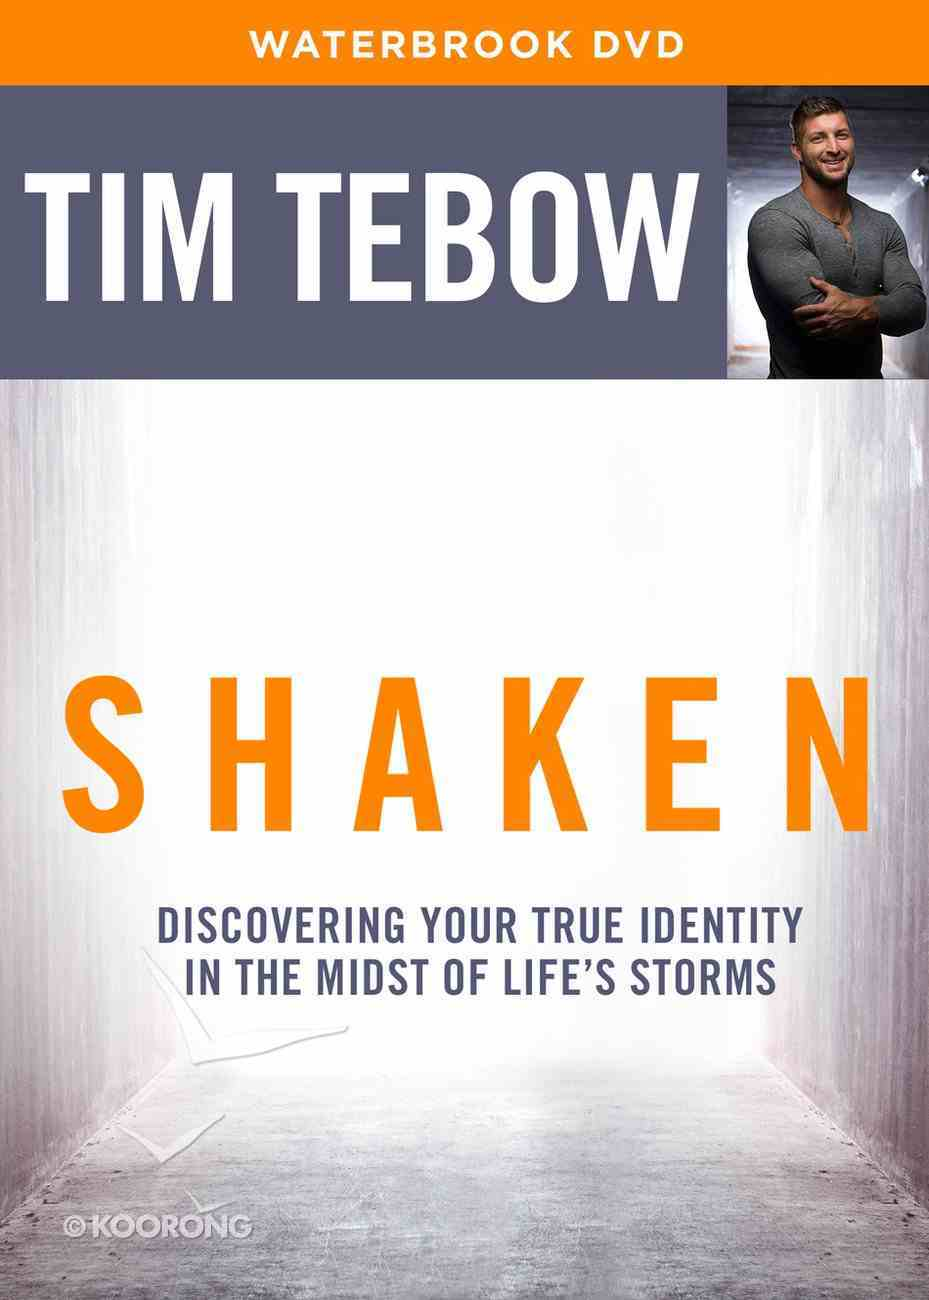 Shaken: Discovering Your True Identity in the Midst of Life's Storms (Bible Study Dvd) DVD